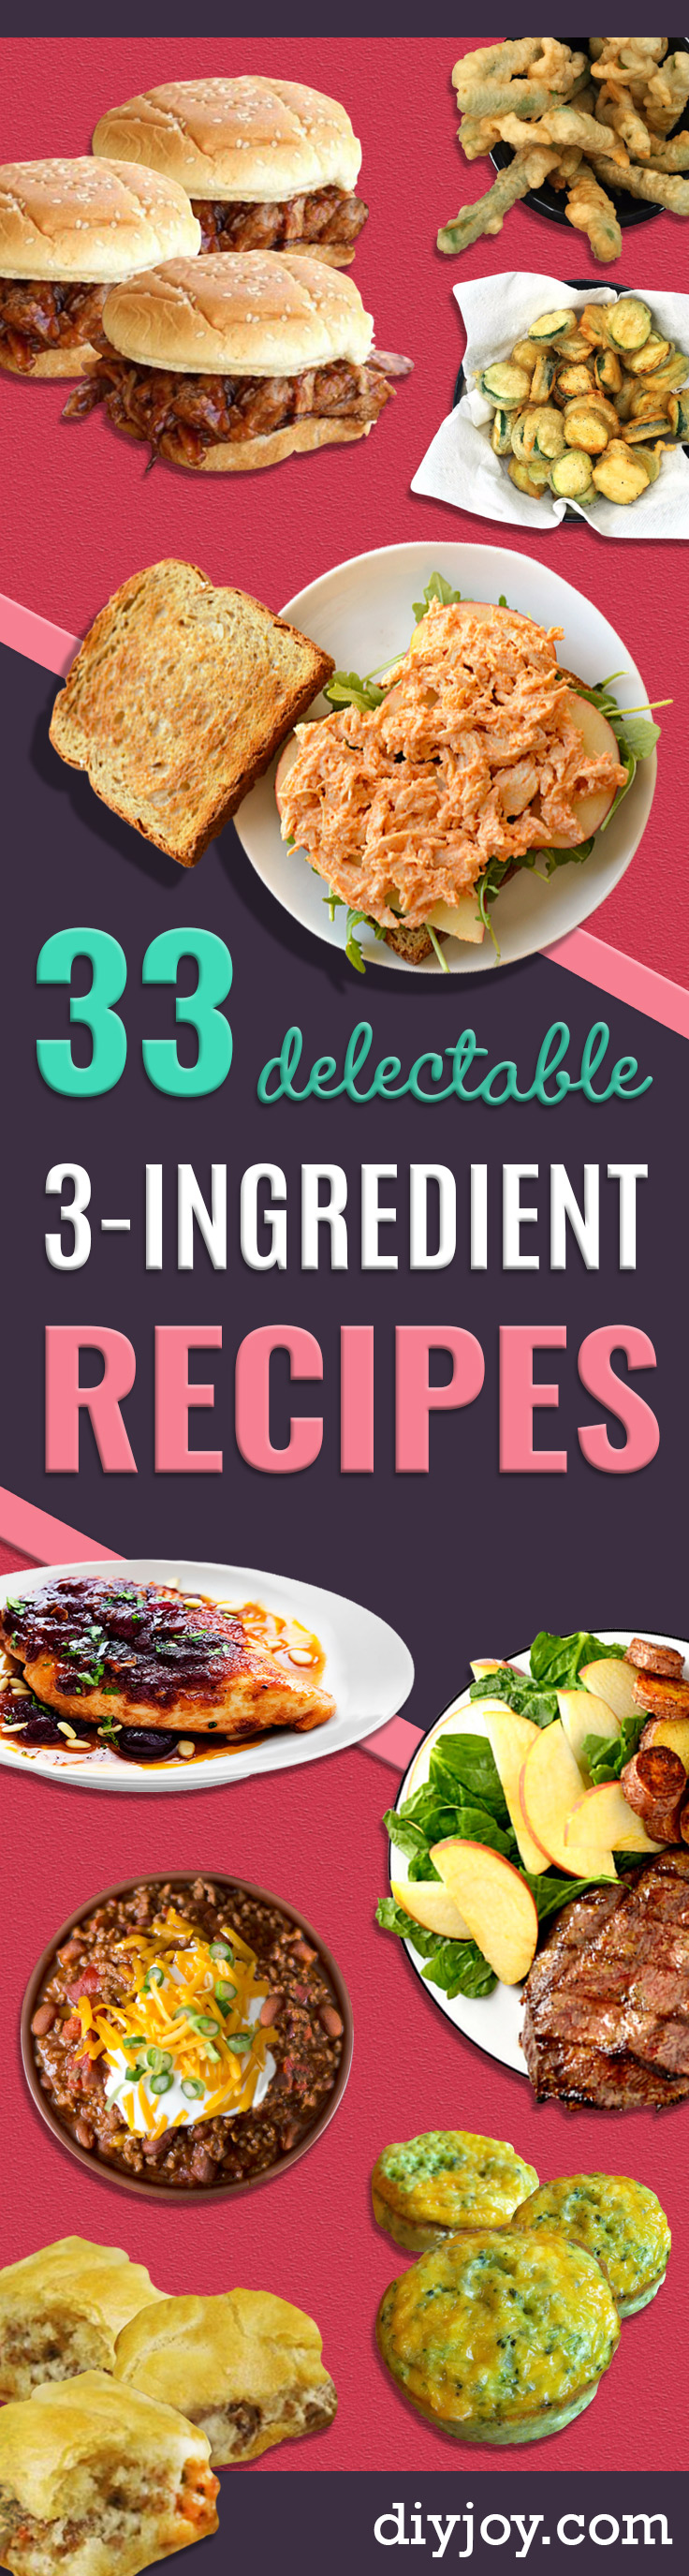 33 Easy Three Ingredient Recipes - Quick And Healthy 3 Ingredients Recipe Ideas for Breakfast, Lunch, Dinner, Appetizers, Snacks and Desserts - Cookies, Chicken, Crockpot Ideas, Baking and Microwave Recipes and Tutorials